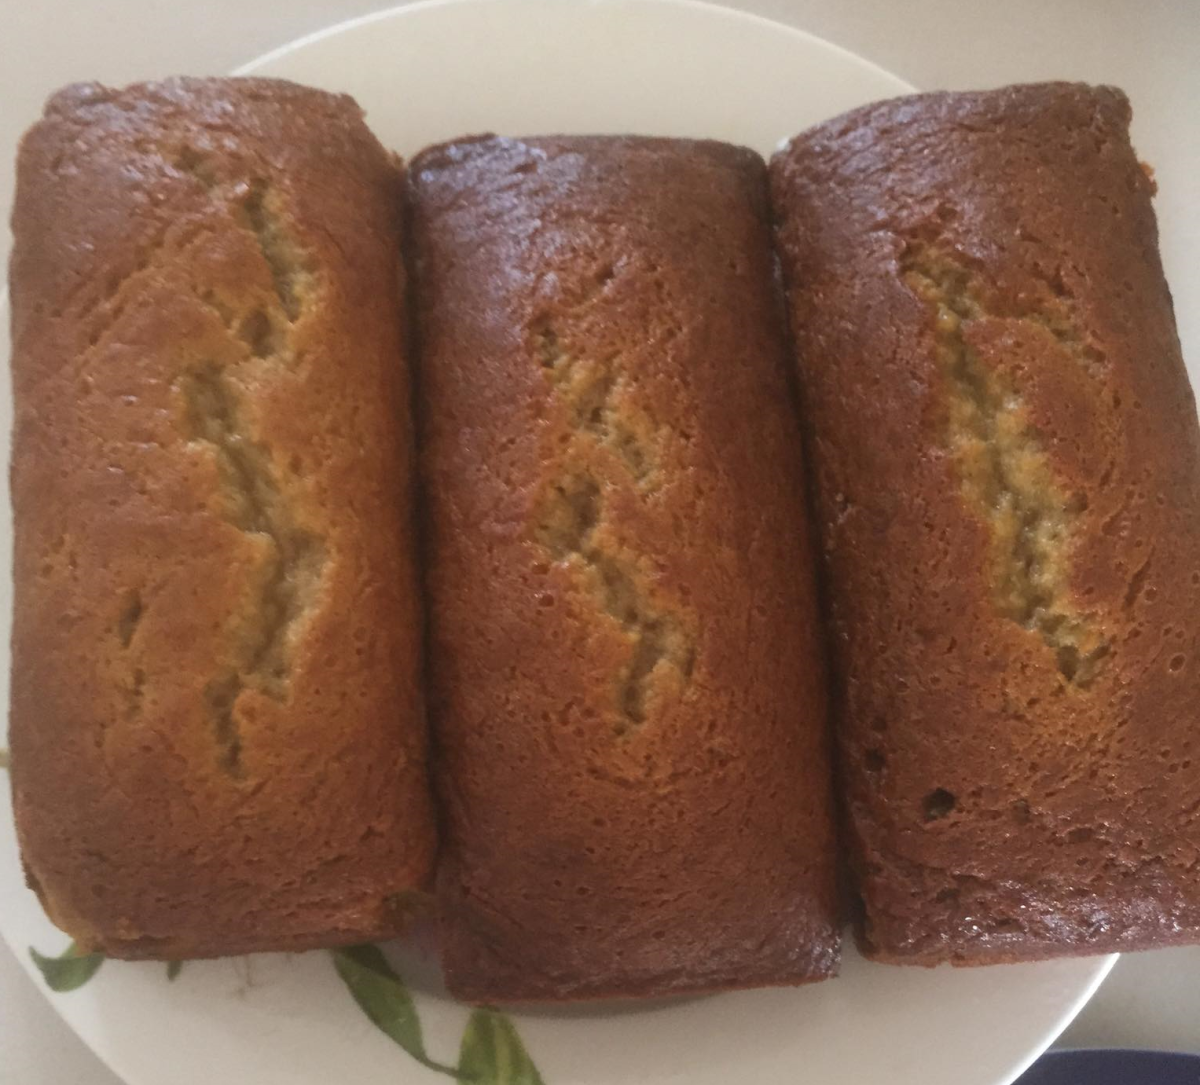 Of all my mom's desserts, this banana cake is my favorite.